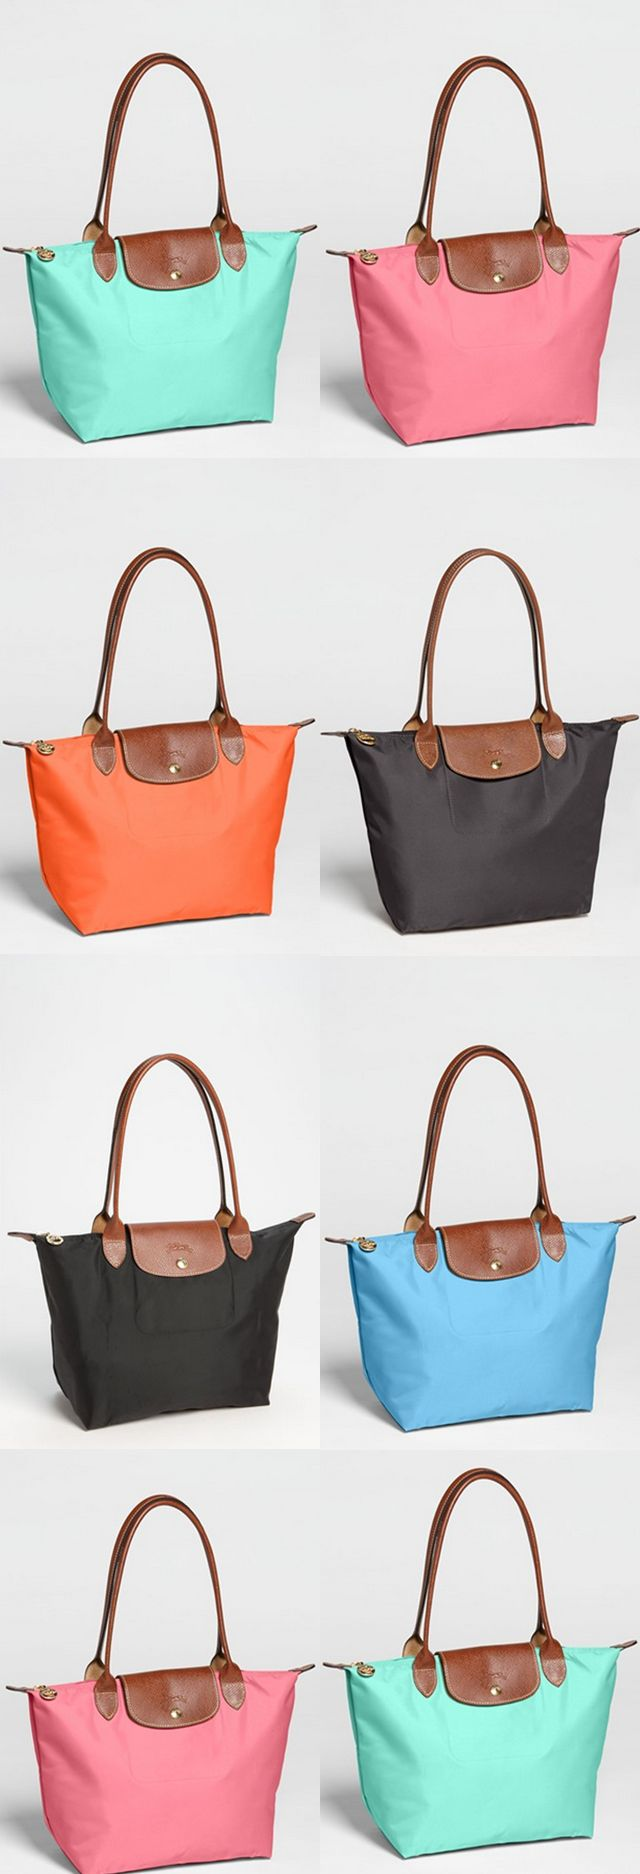 color  Champs online My free one Longchamp  buy shipping Colorful in http   rstyle me n ffygdn bn take Totes  each   and   Style I     ll boots totes    please  canada